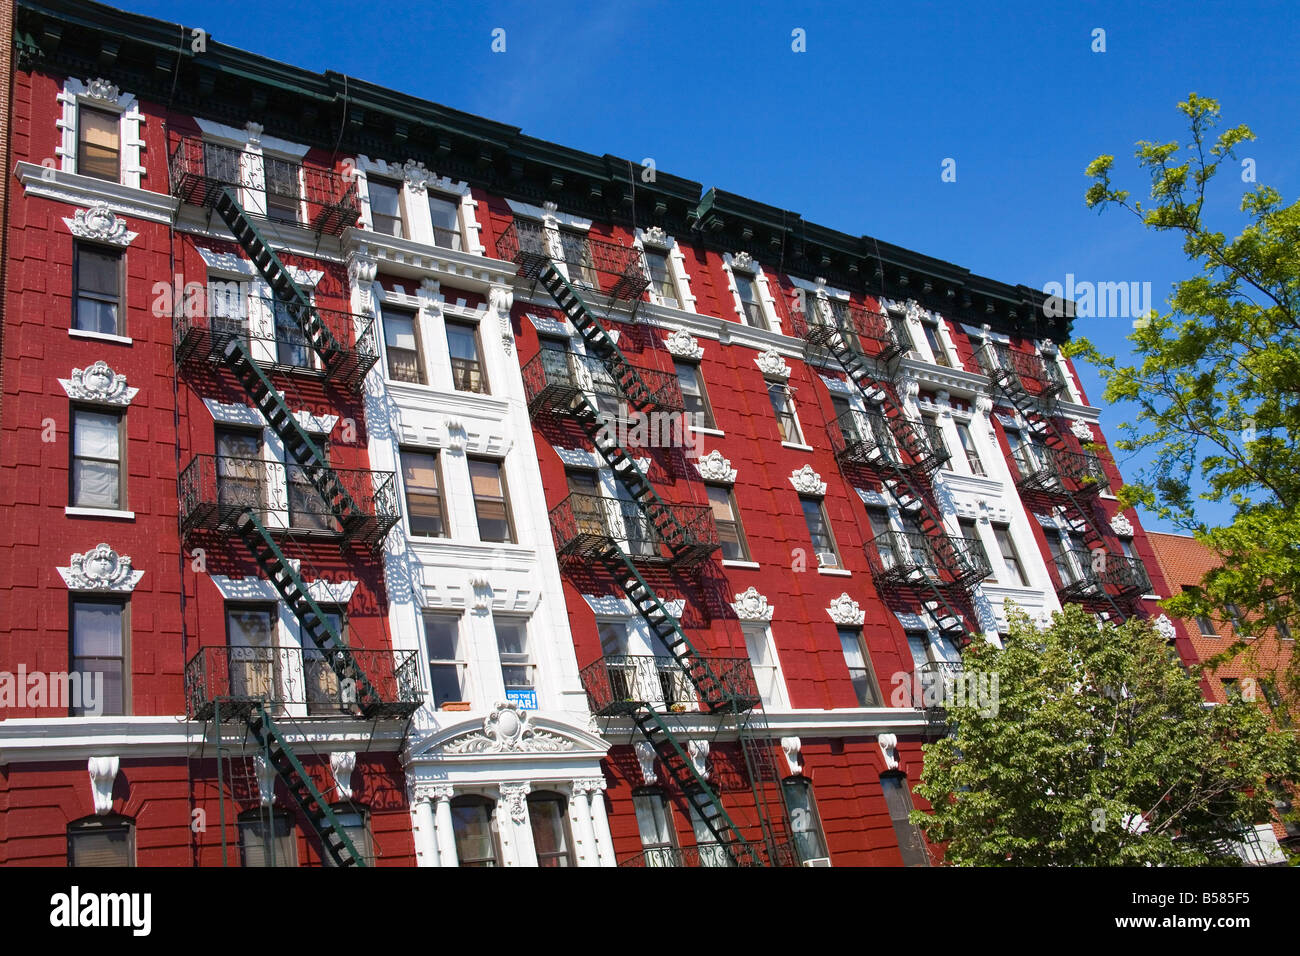 Apartments In Alphabet City, Downtown Manhattan, New York City, New York,  United States Of America, North America